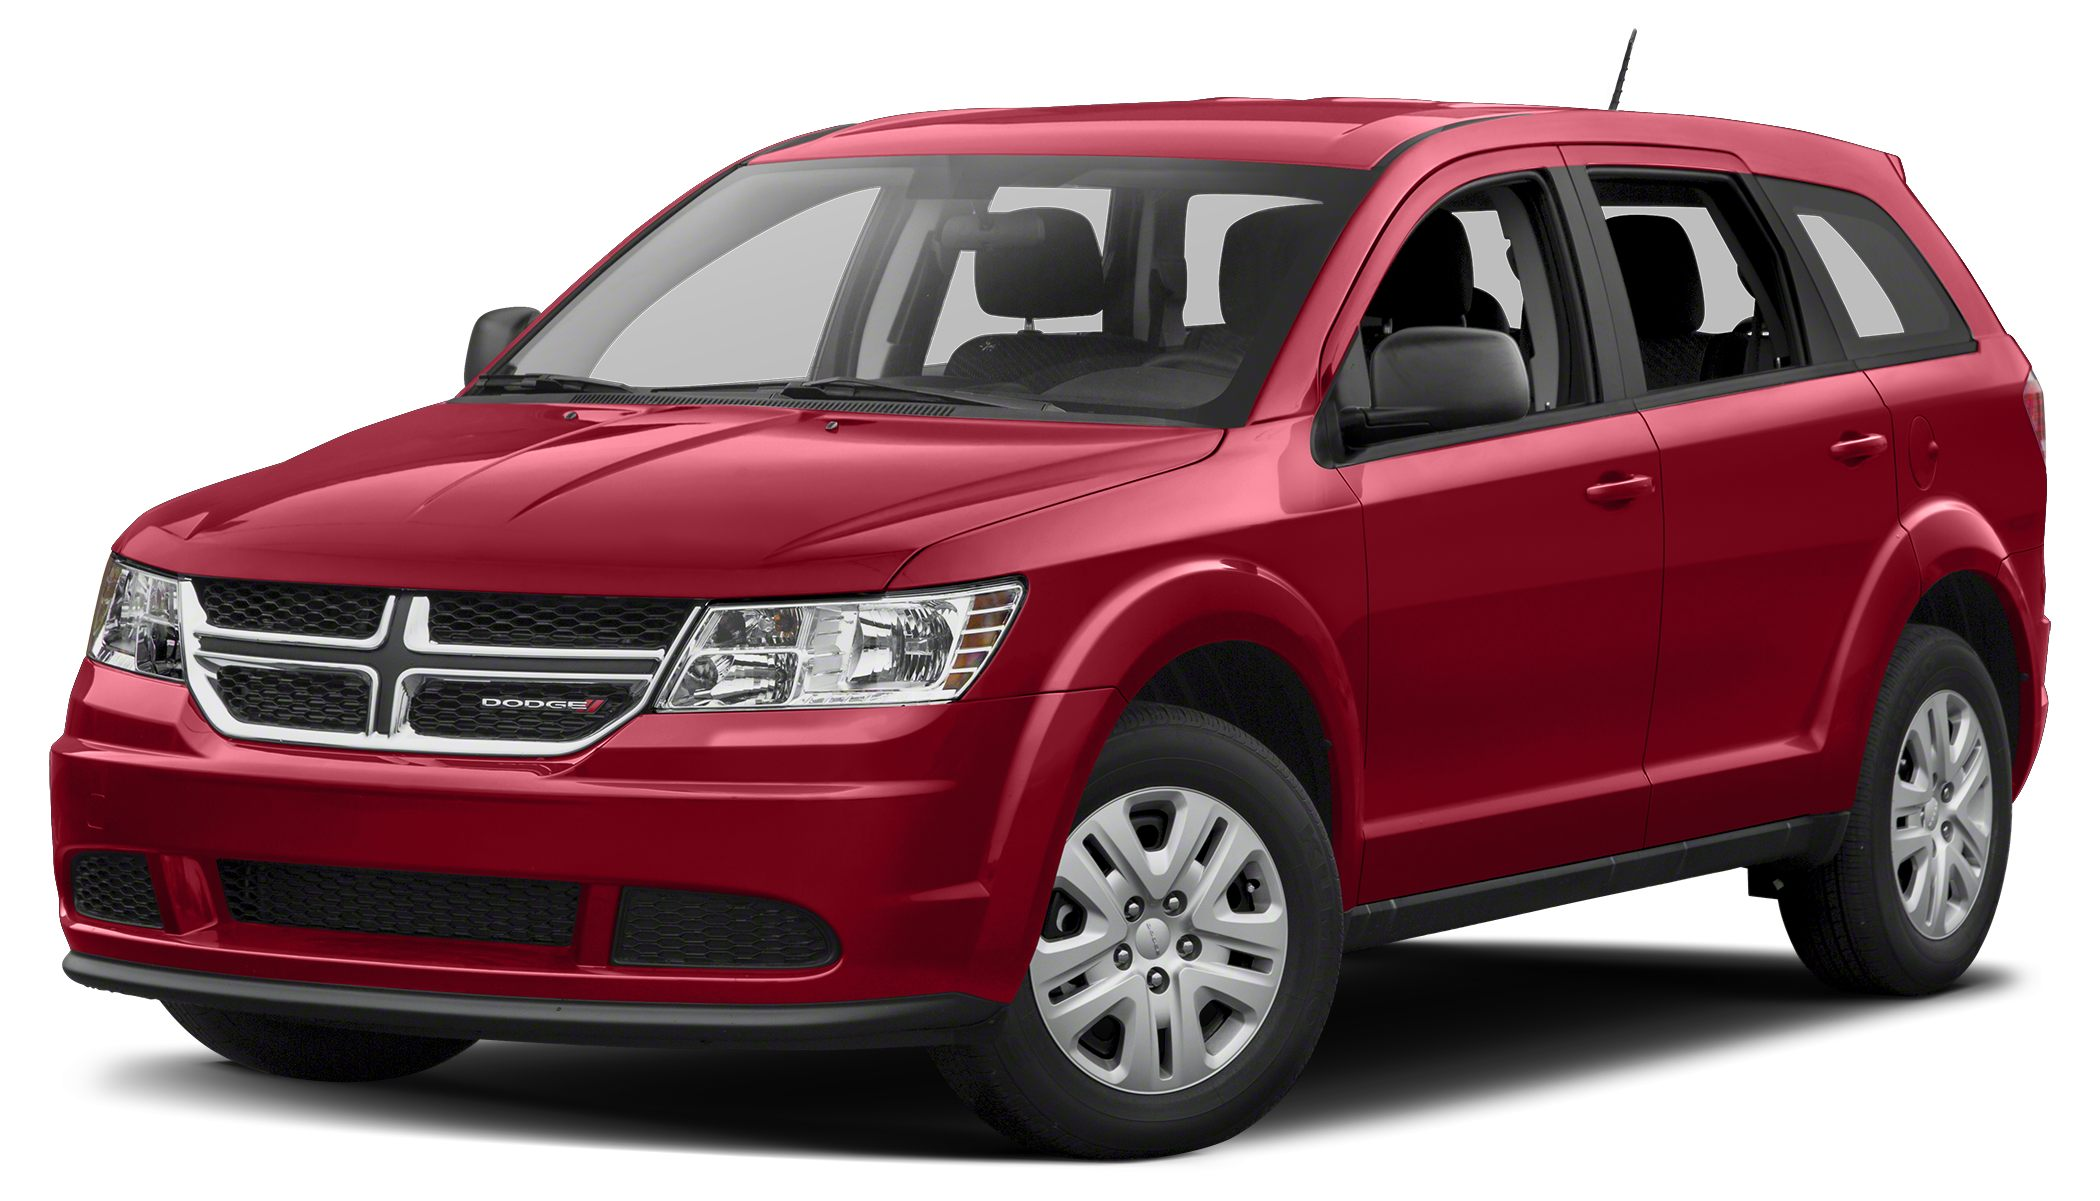 2018 Dodge Journey SE SPECIAL ONLINE PRICE INCLUDES 4000 IN REBATES THAT ALL CUSTOMERS QUALIFY F